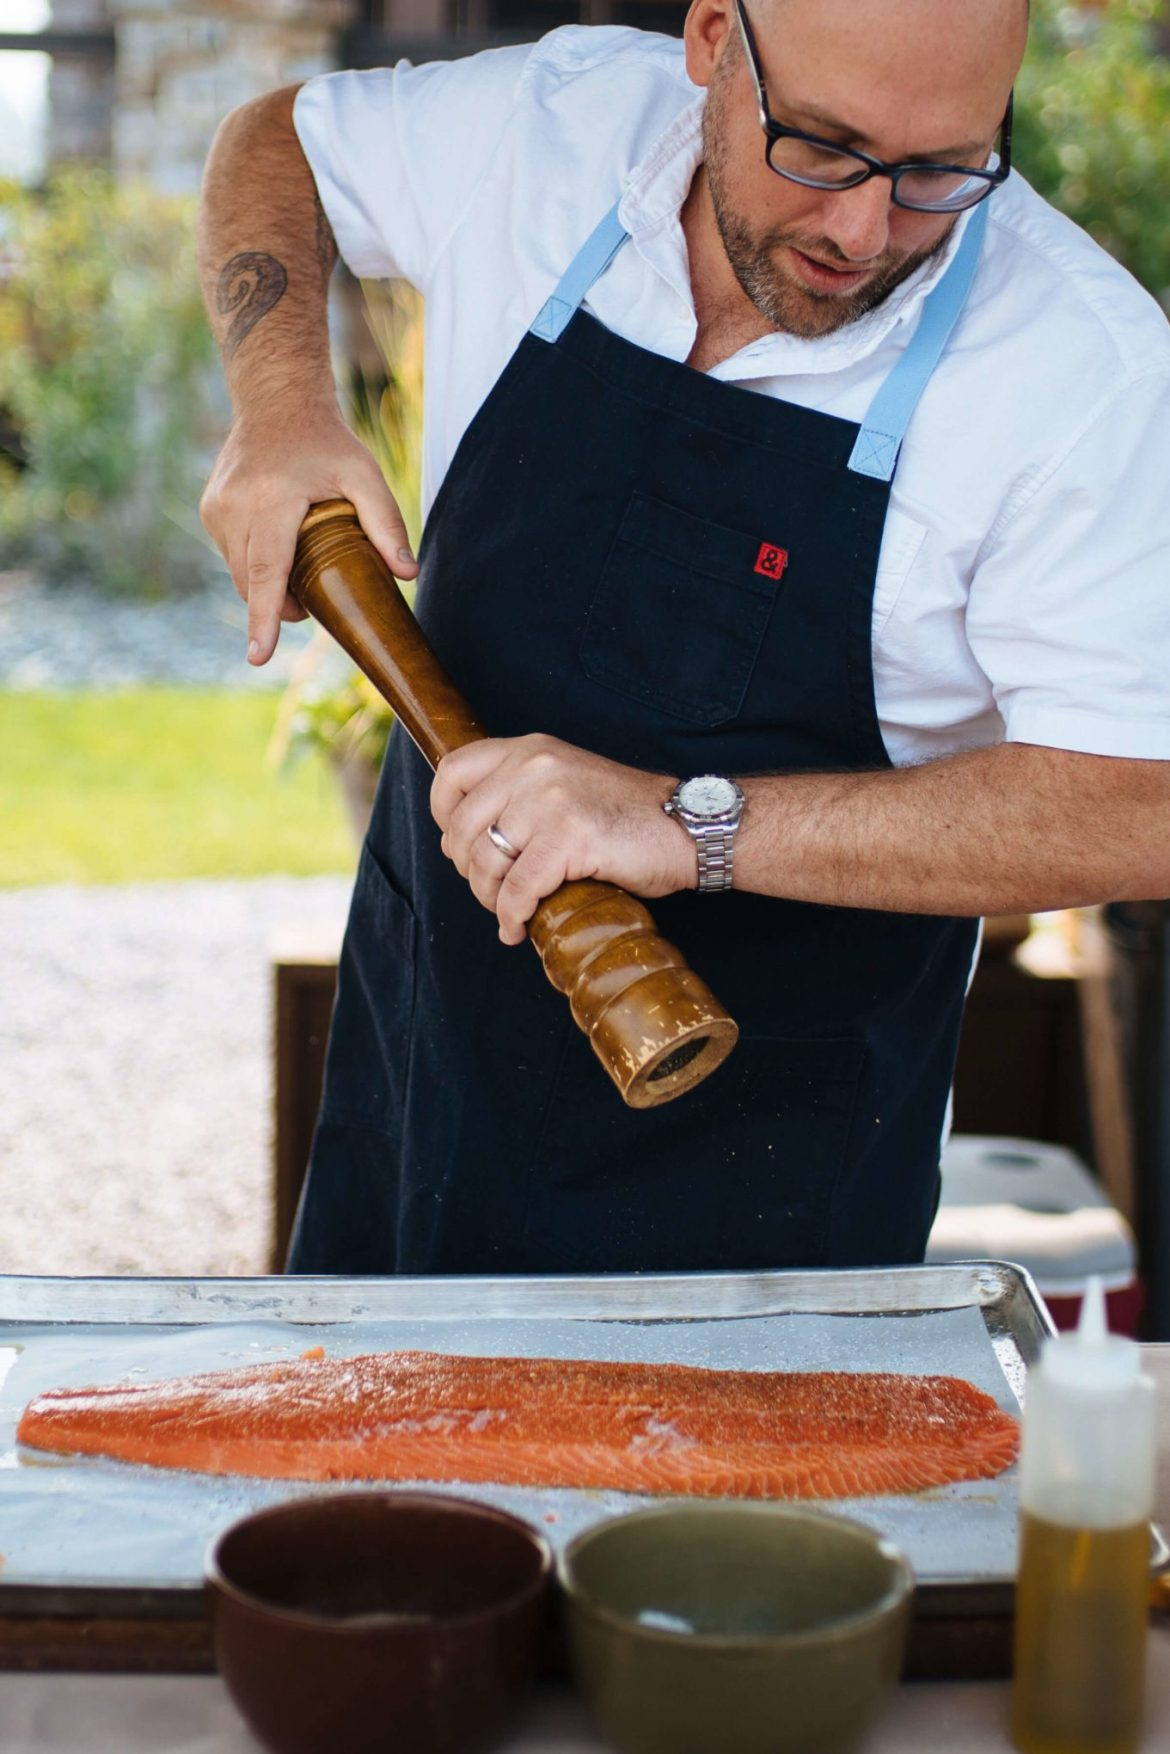 Chef's Grilled salmon recipe from the Dentons in Ox Portland, season salmon by salt and peppering the salmon, the resort at paws up, montana glamping, cookbook live, greg denton OX restaurant Portland, The Taste Edit